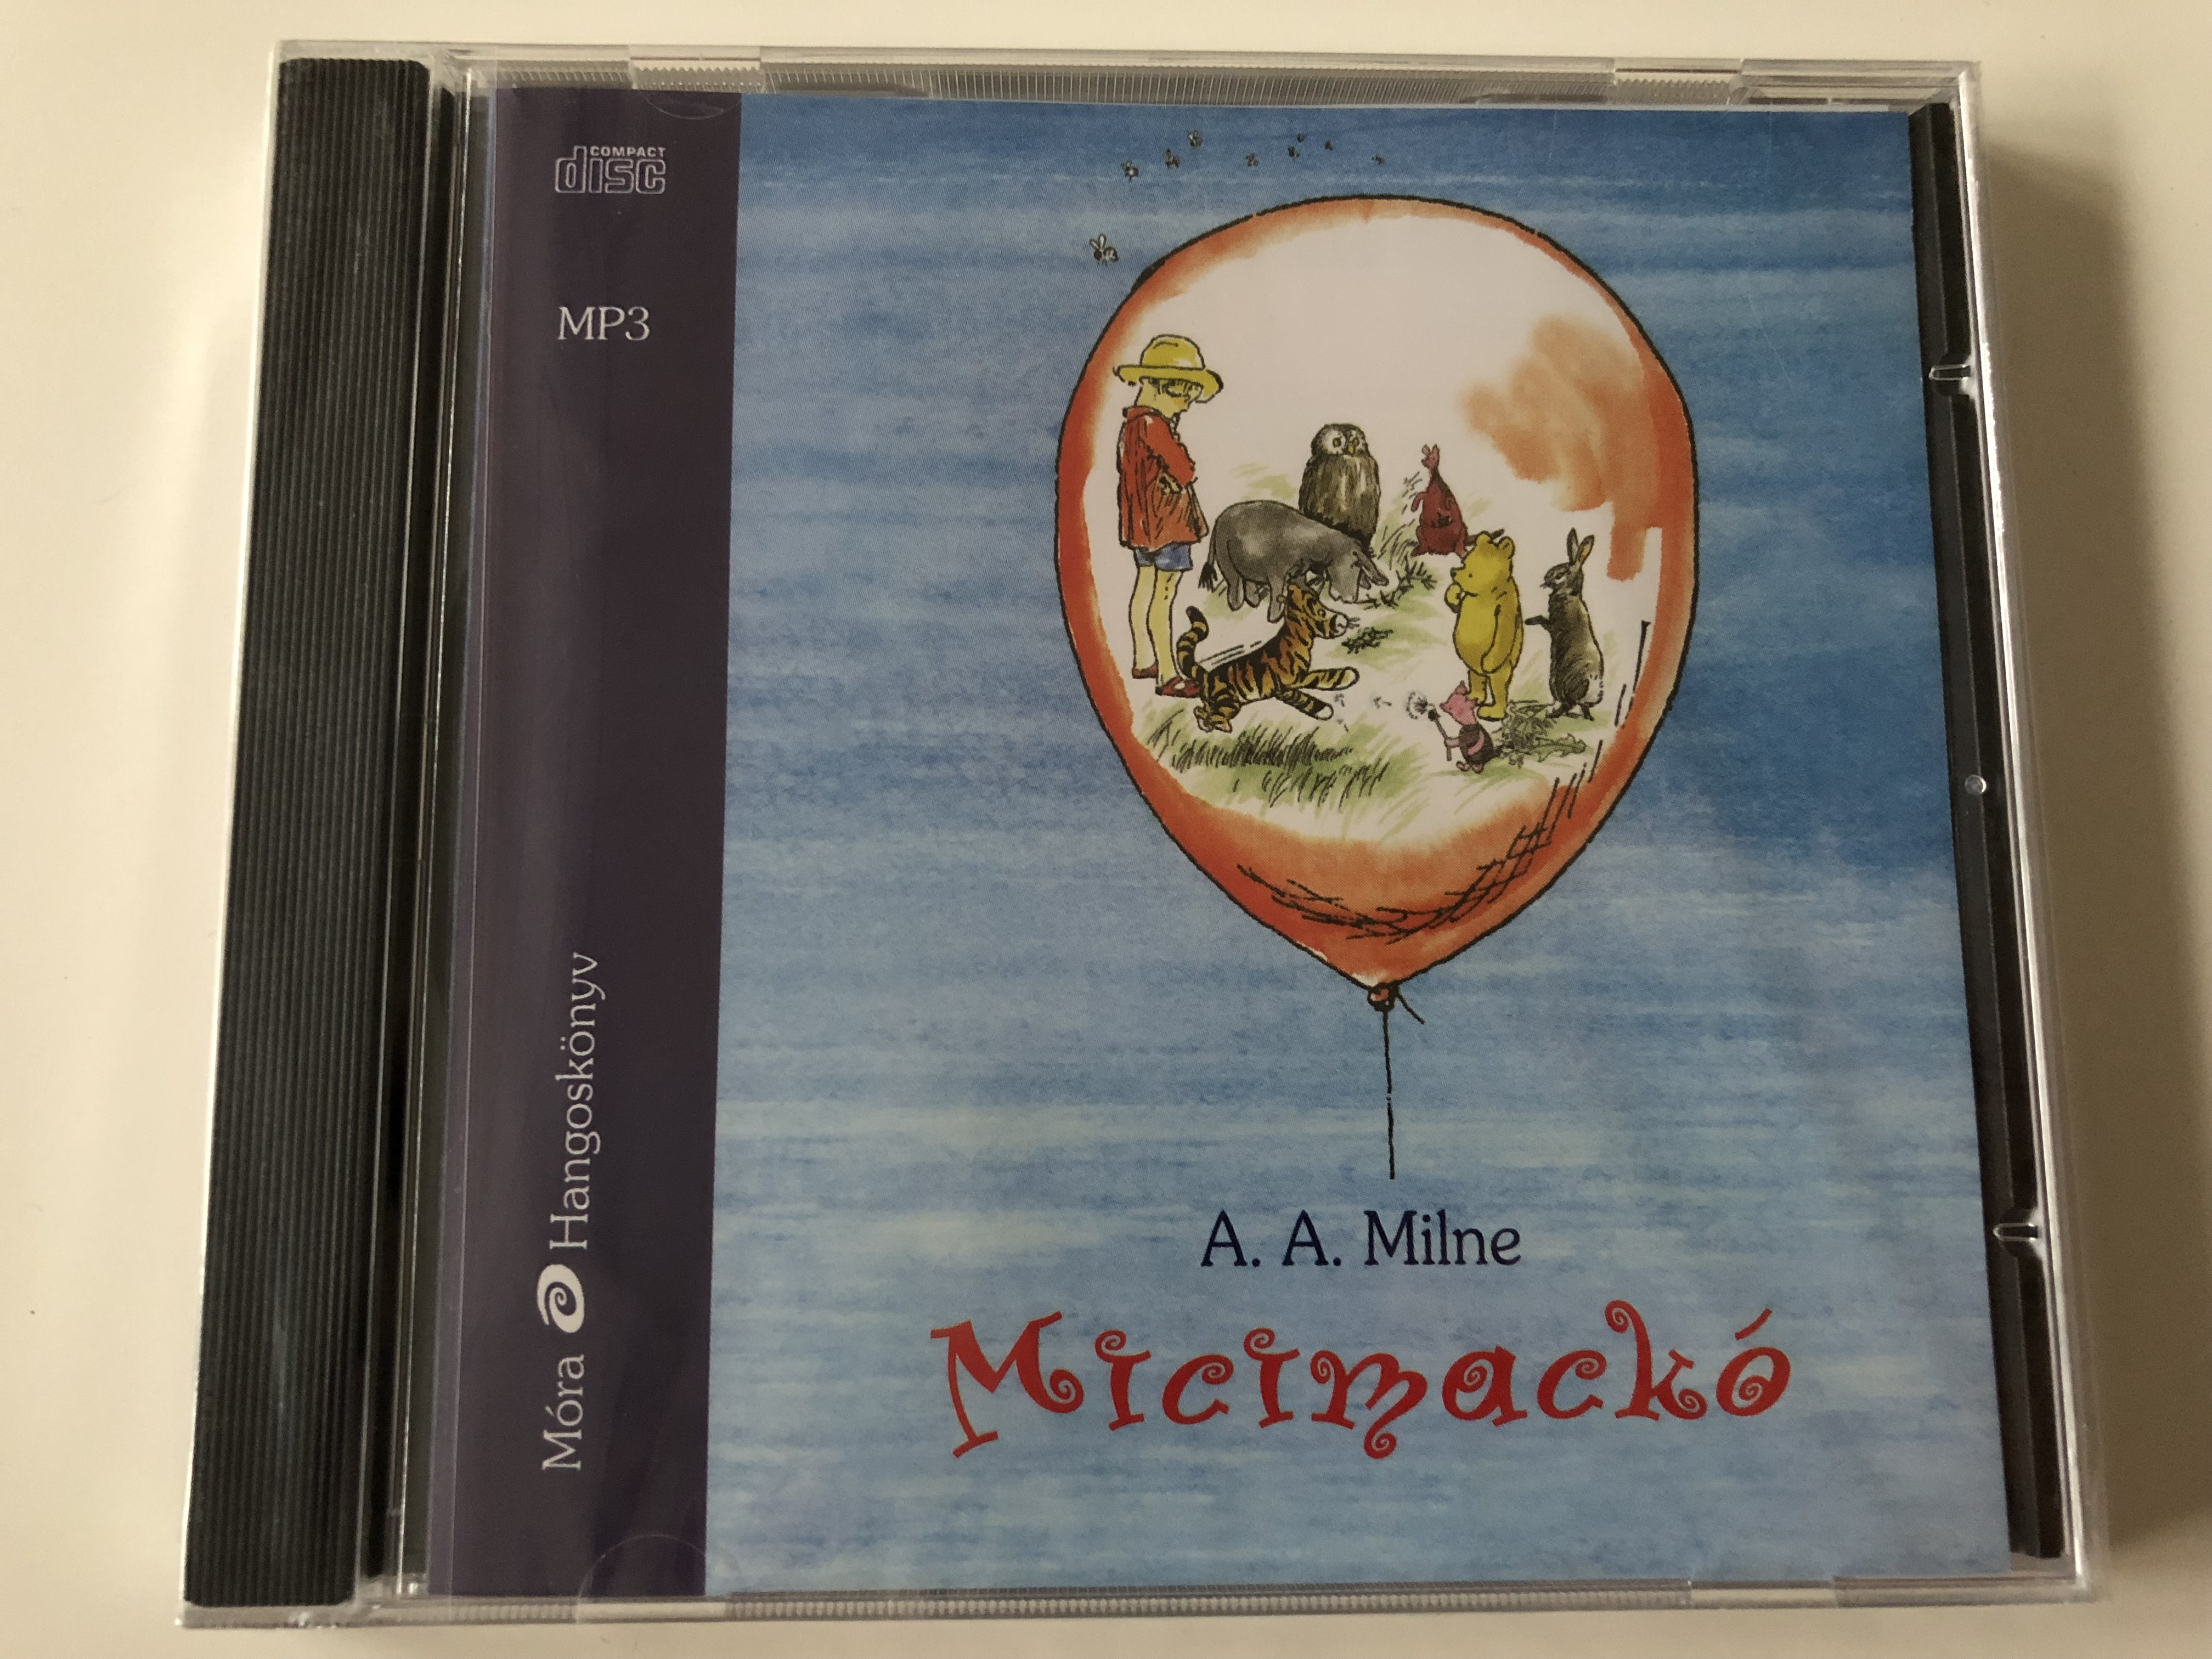 -micimack-by-a.a.-milne-hungarian-language-audio-book-translation-of-winnie-the-pooh-the-house-at-pooh-corner-read-by-koltai-r-bert-m-ra-k-nyvkiad-2011-1-.jpg